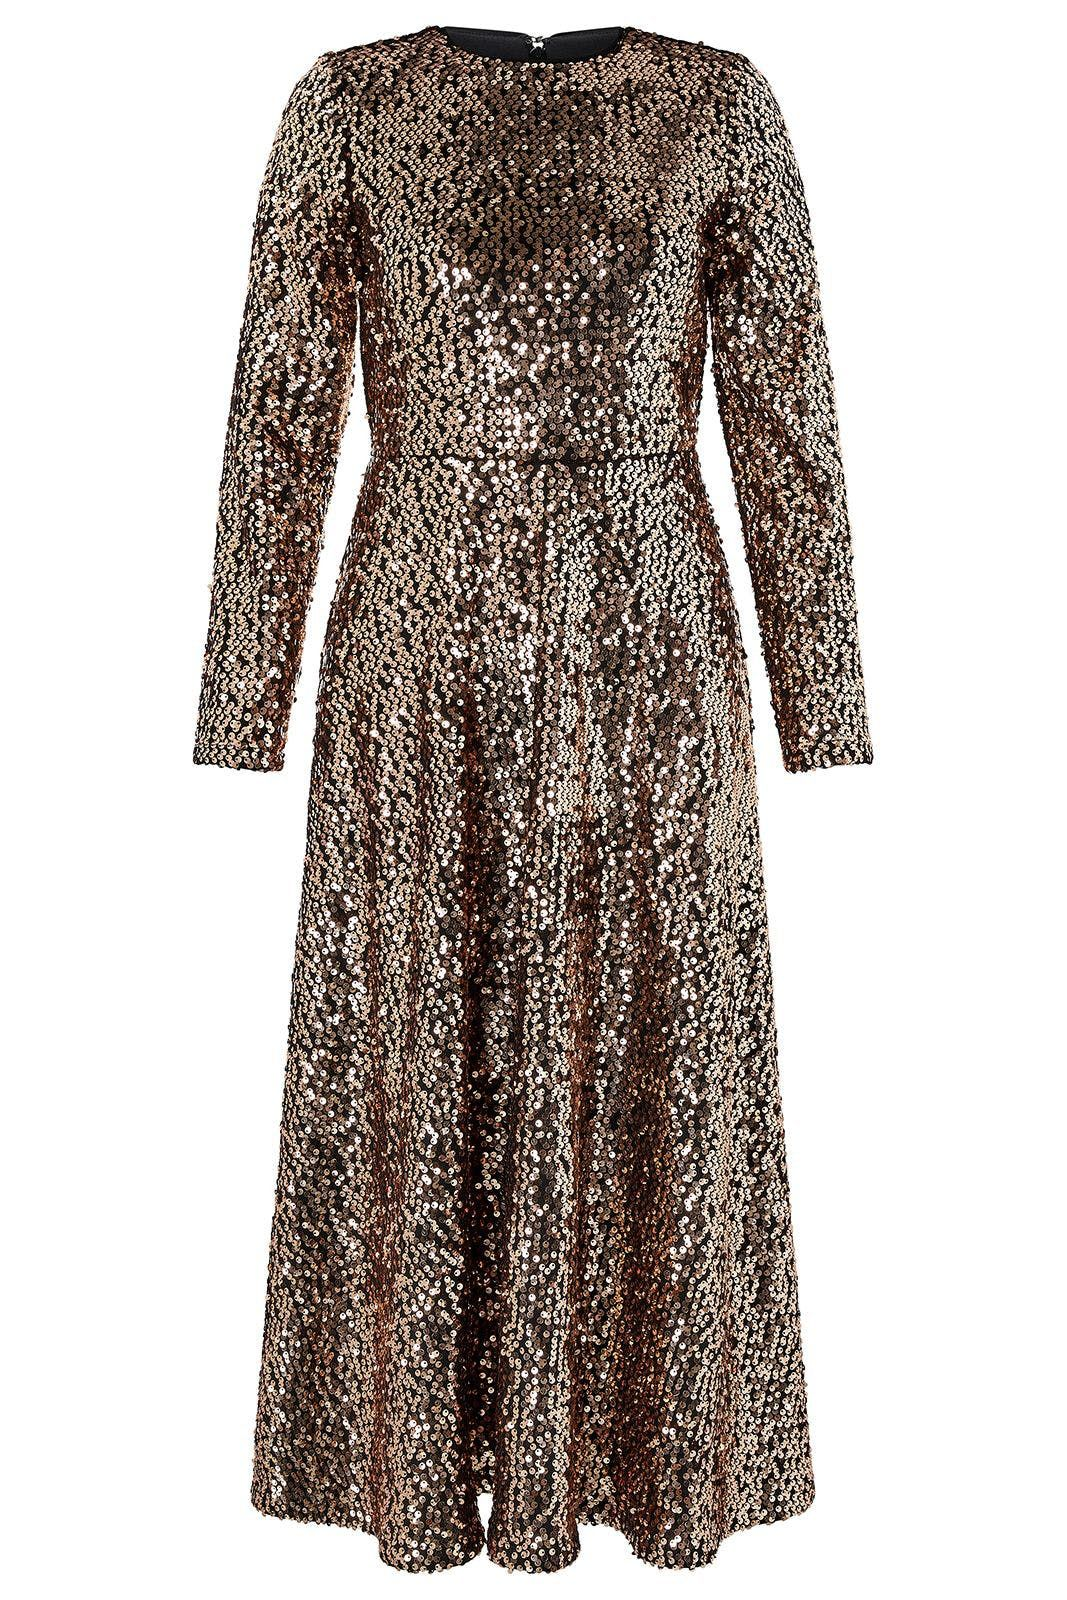 b5c0cad1 13 sequin dresses to get you in the Christmas party mood | Fashion ...